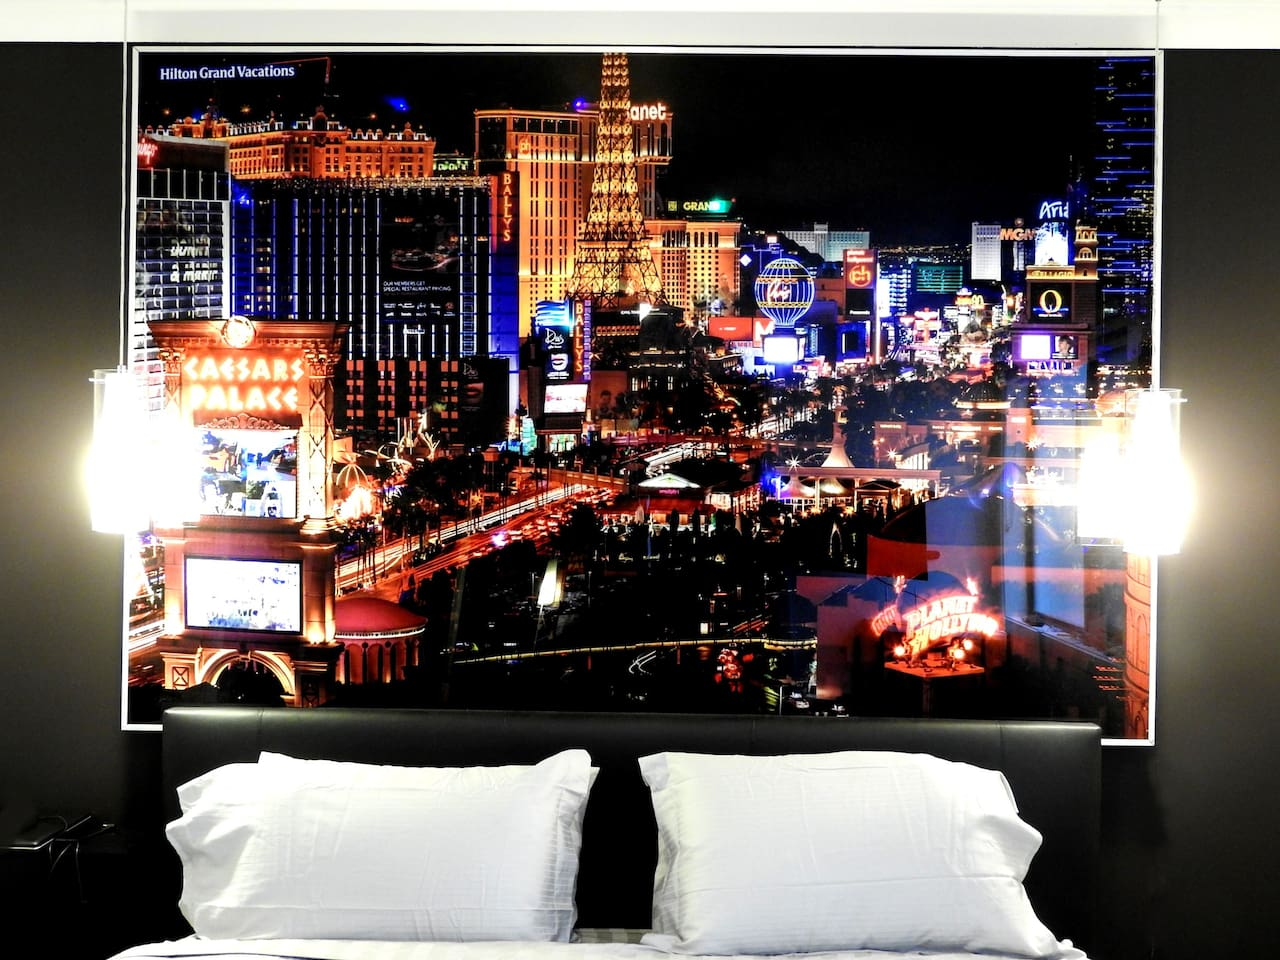 King bed with Las Vegas LED flashing bedhead